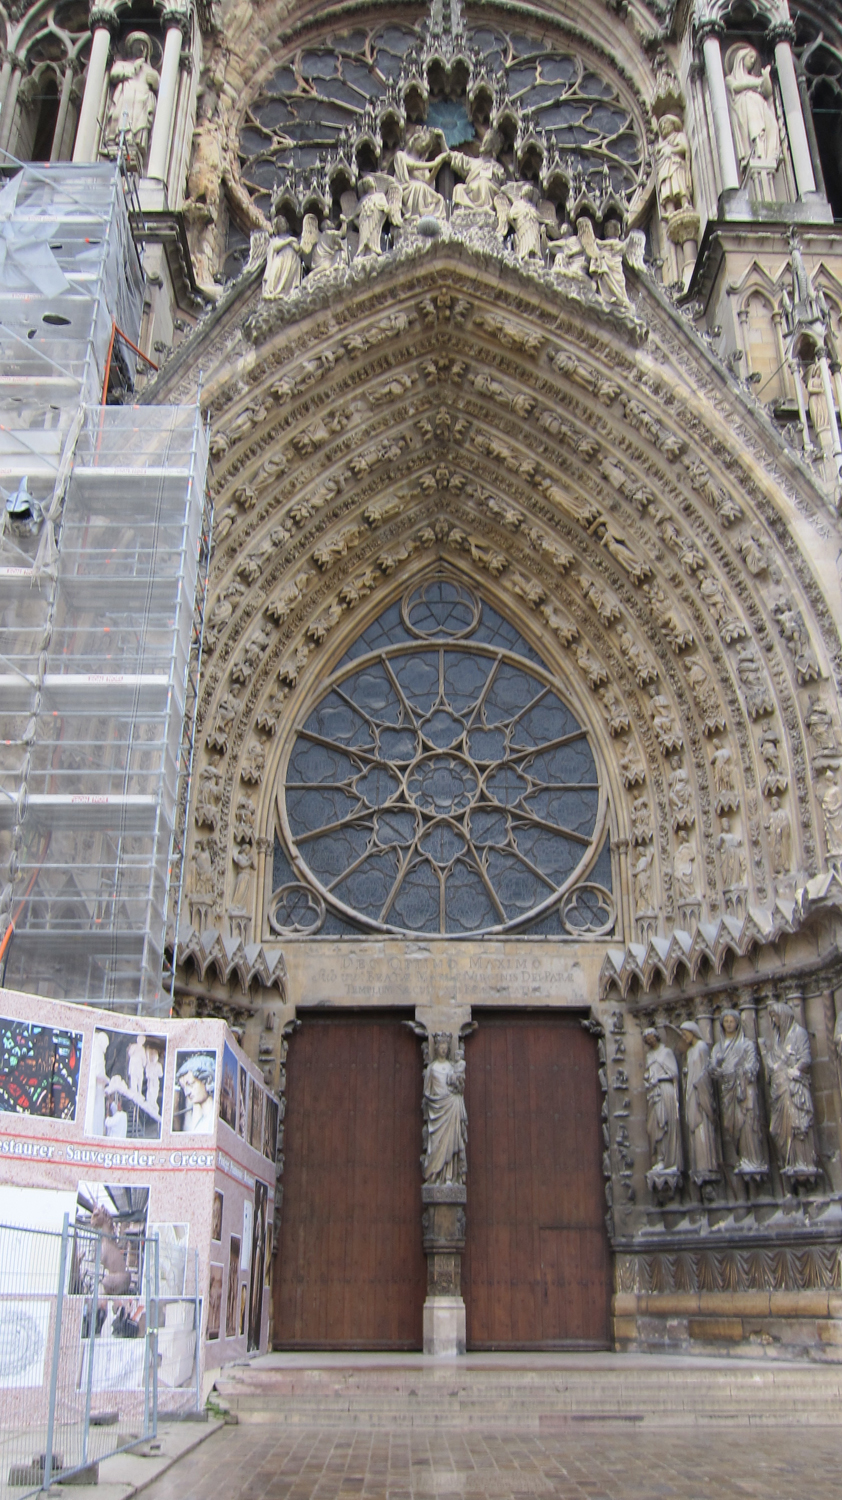 Reims Cathedral Sculpture Facade of Reims Cathedral